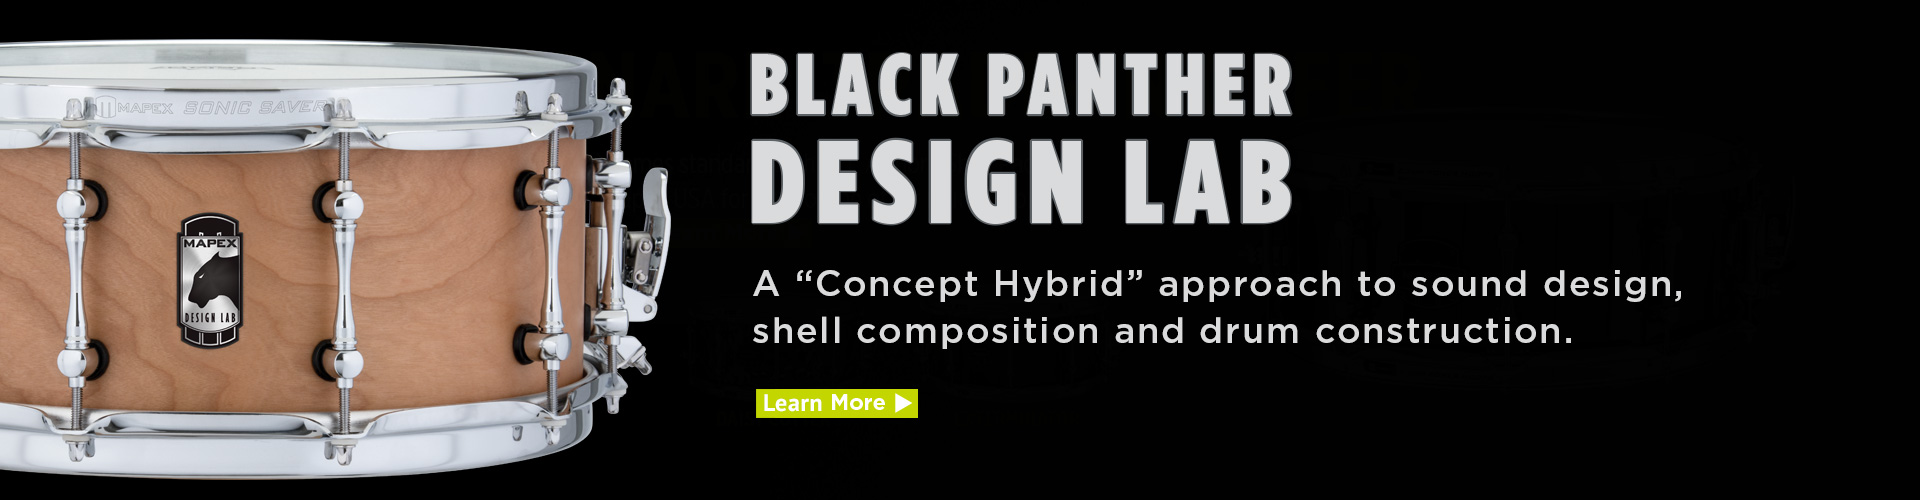 Black Panther Design Lab Snare Drums